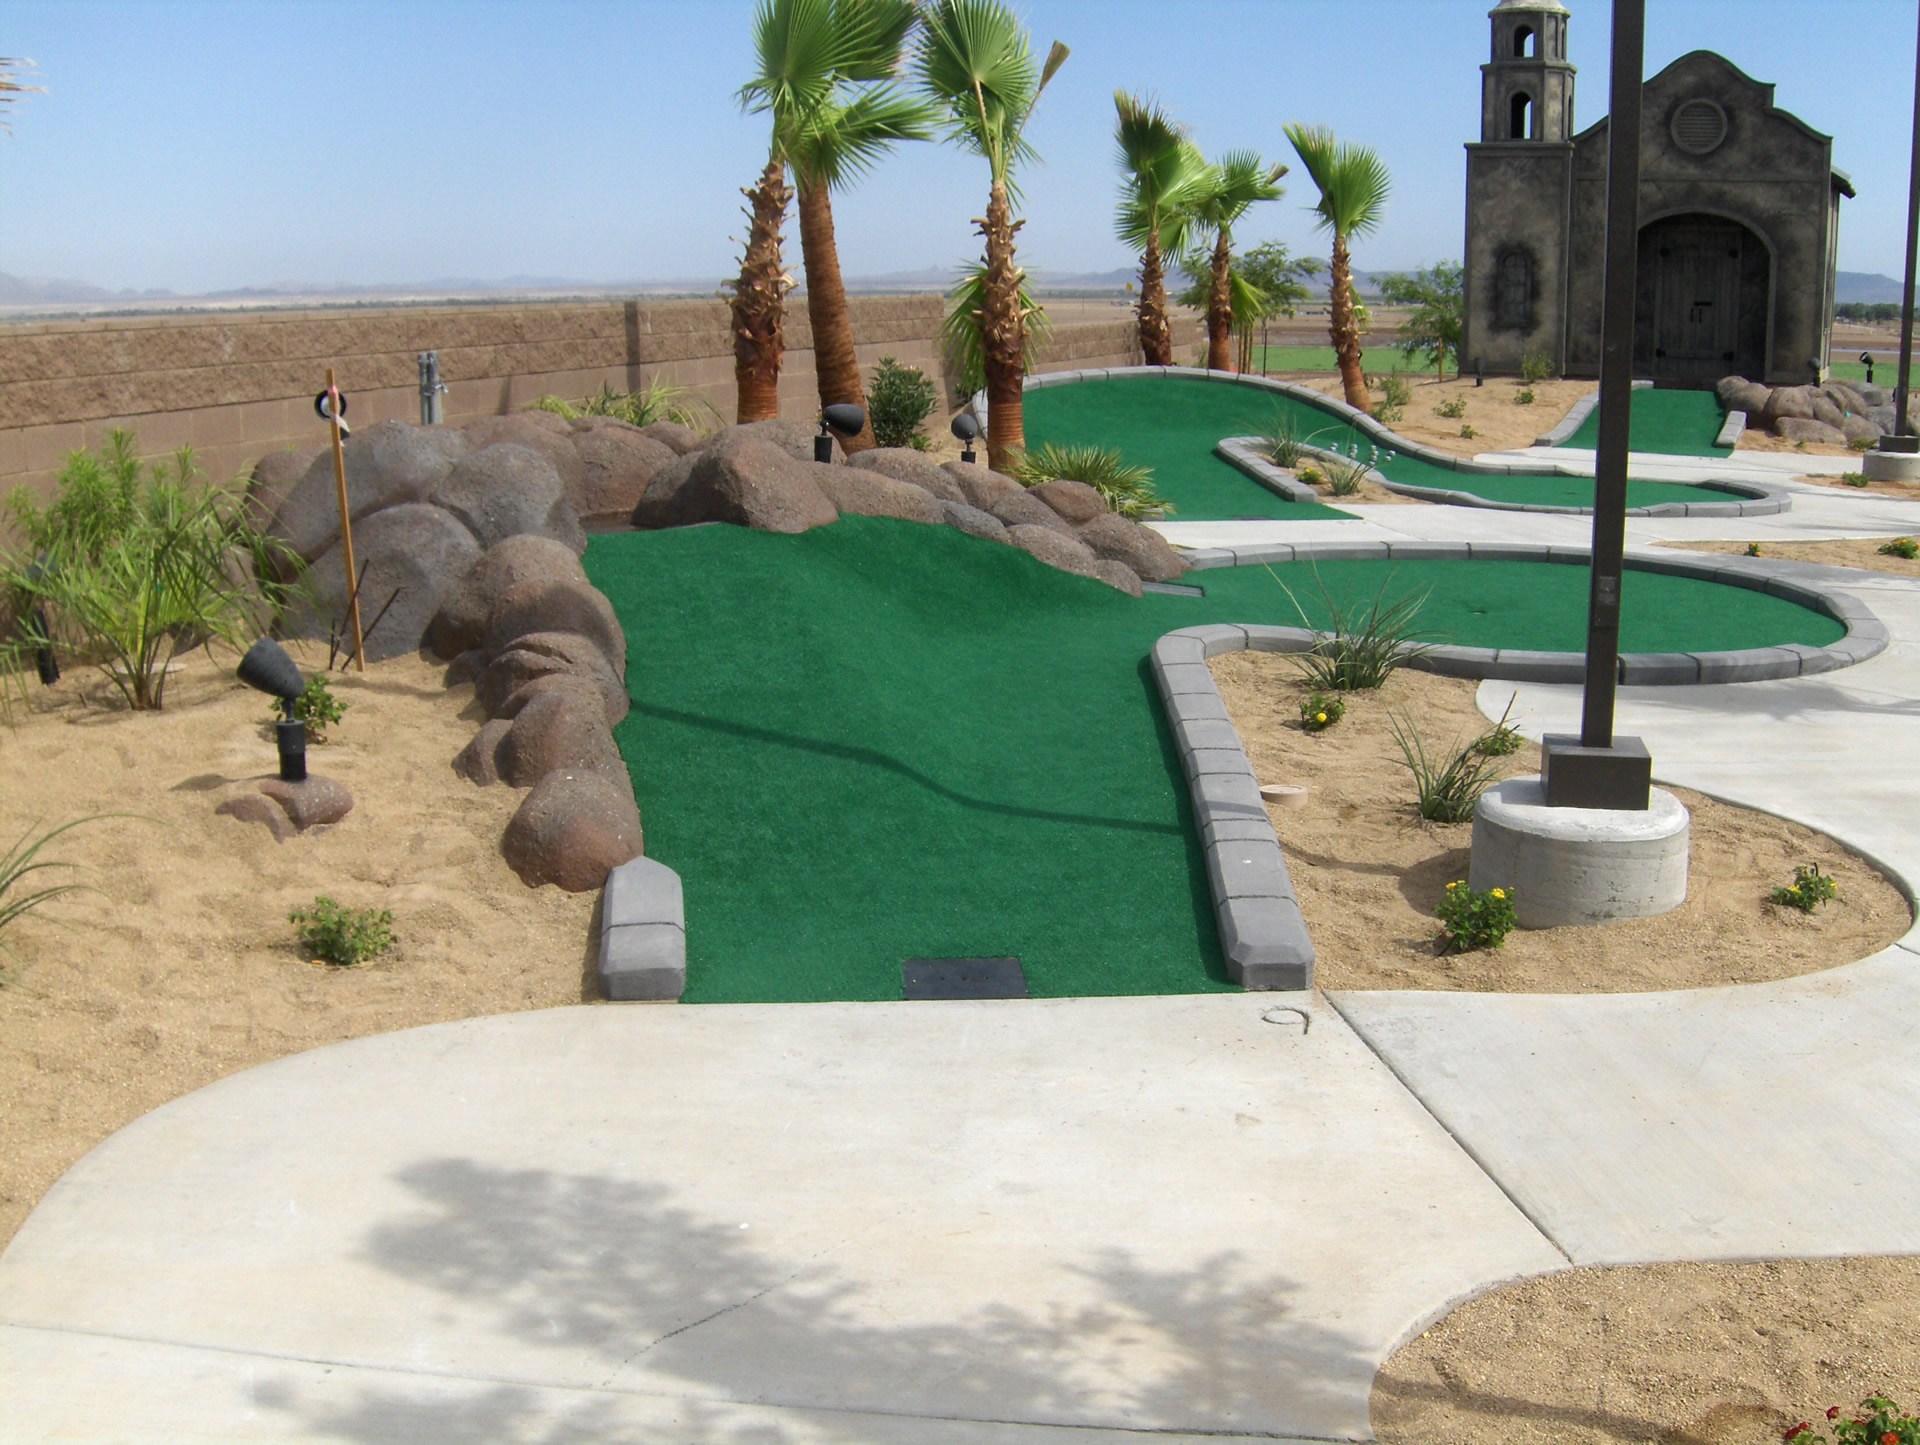 mini golf themed park in desert